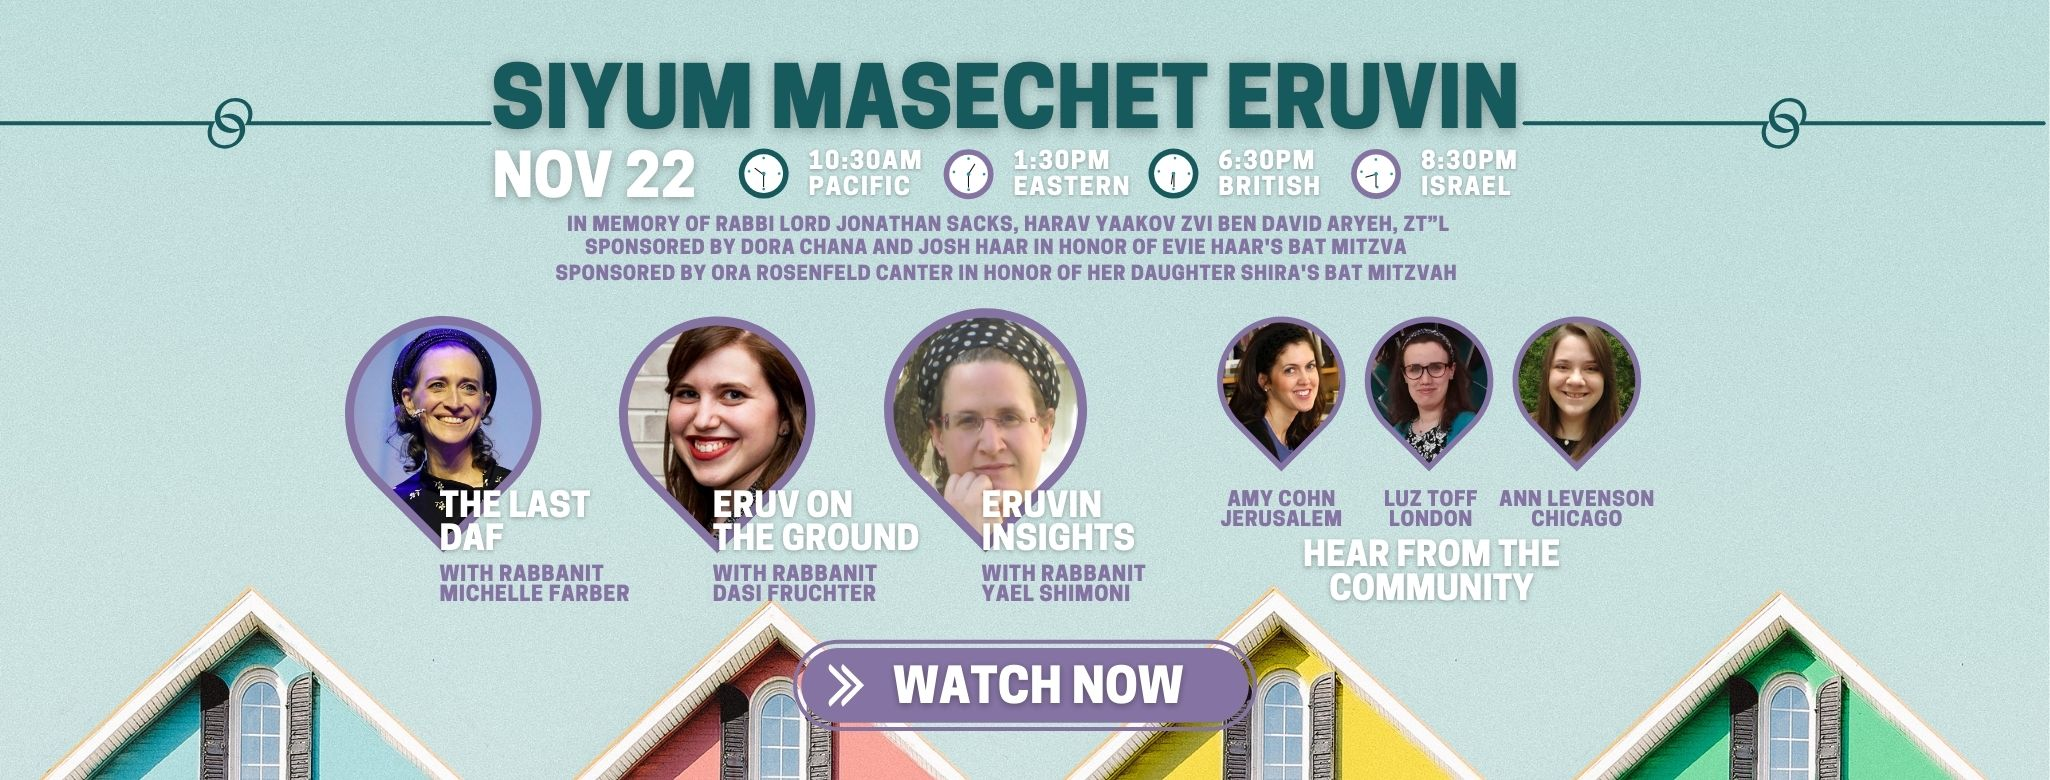 web watch Event cover siyum Eruvin